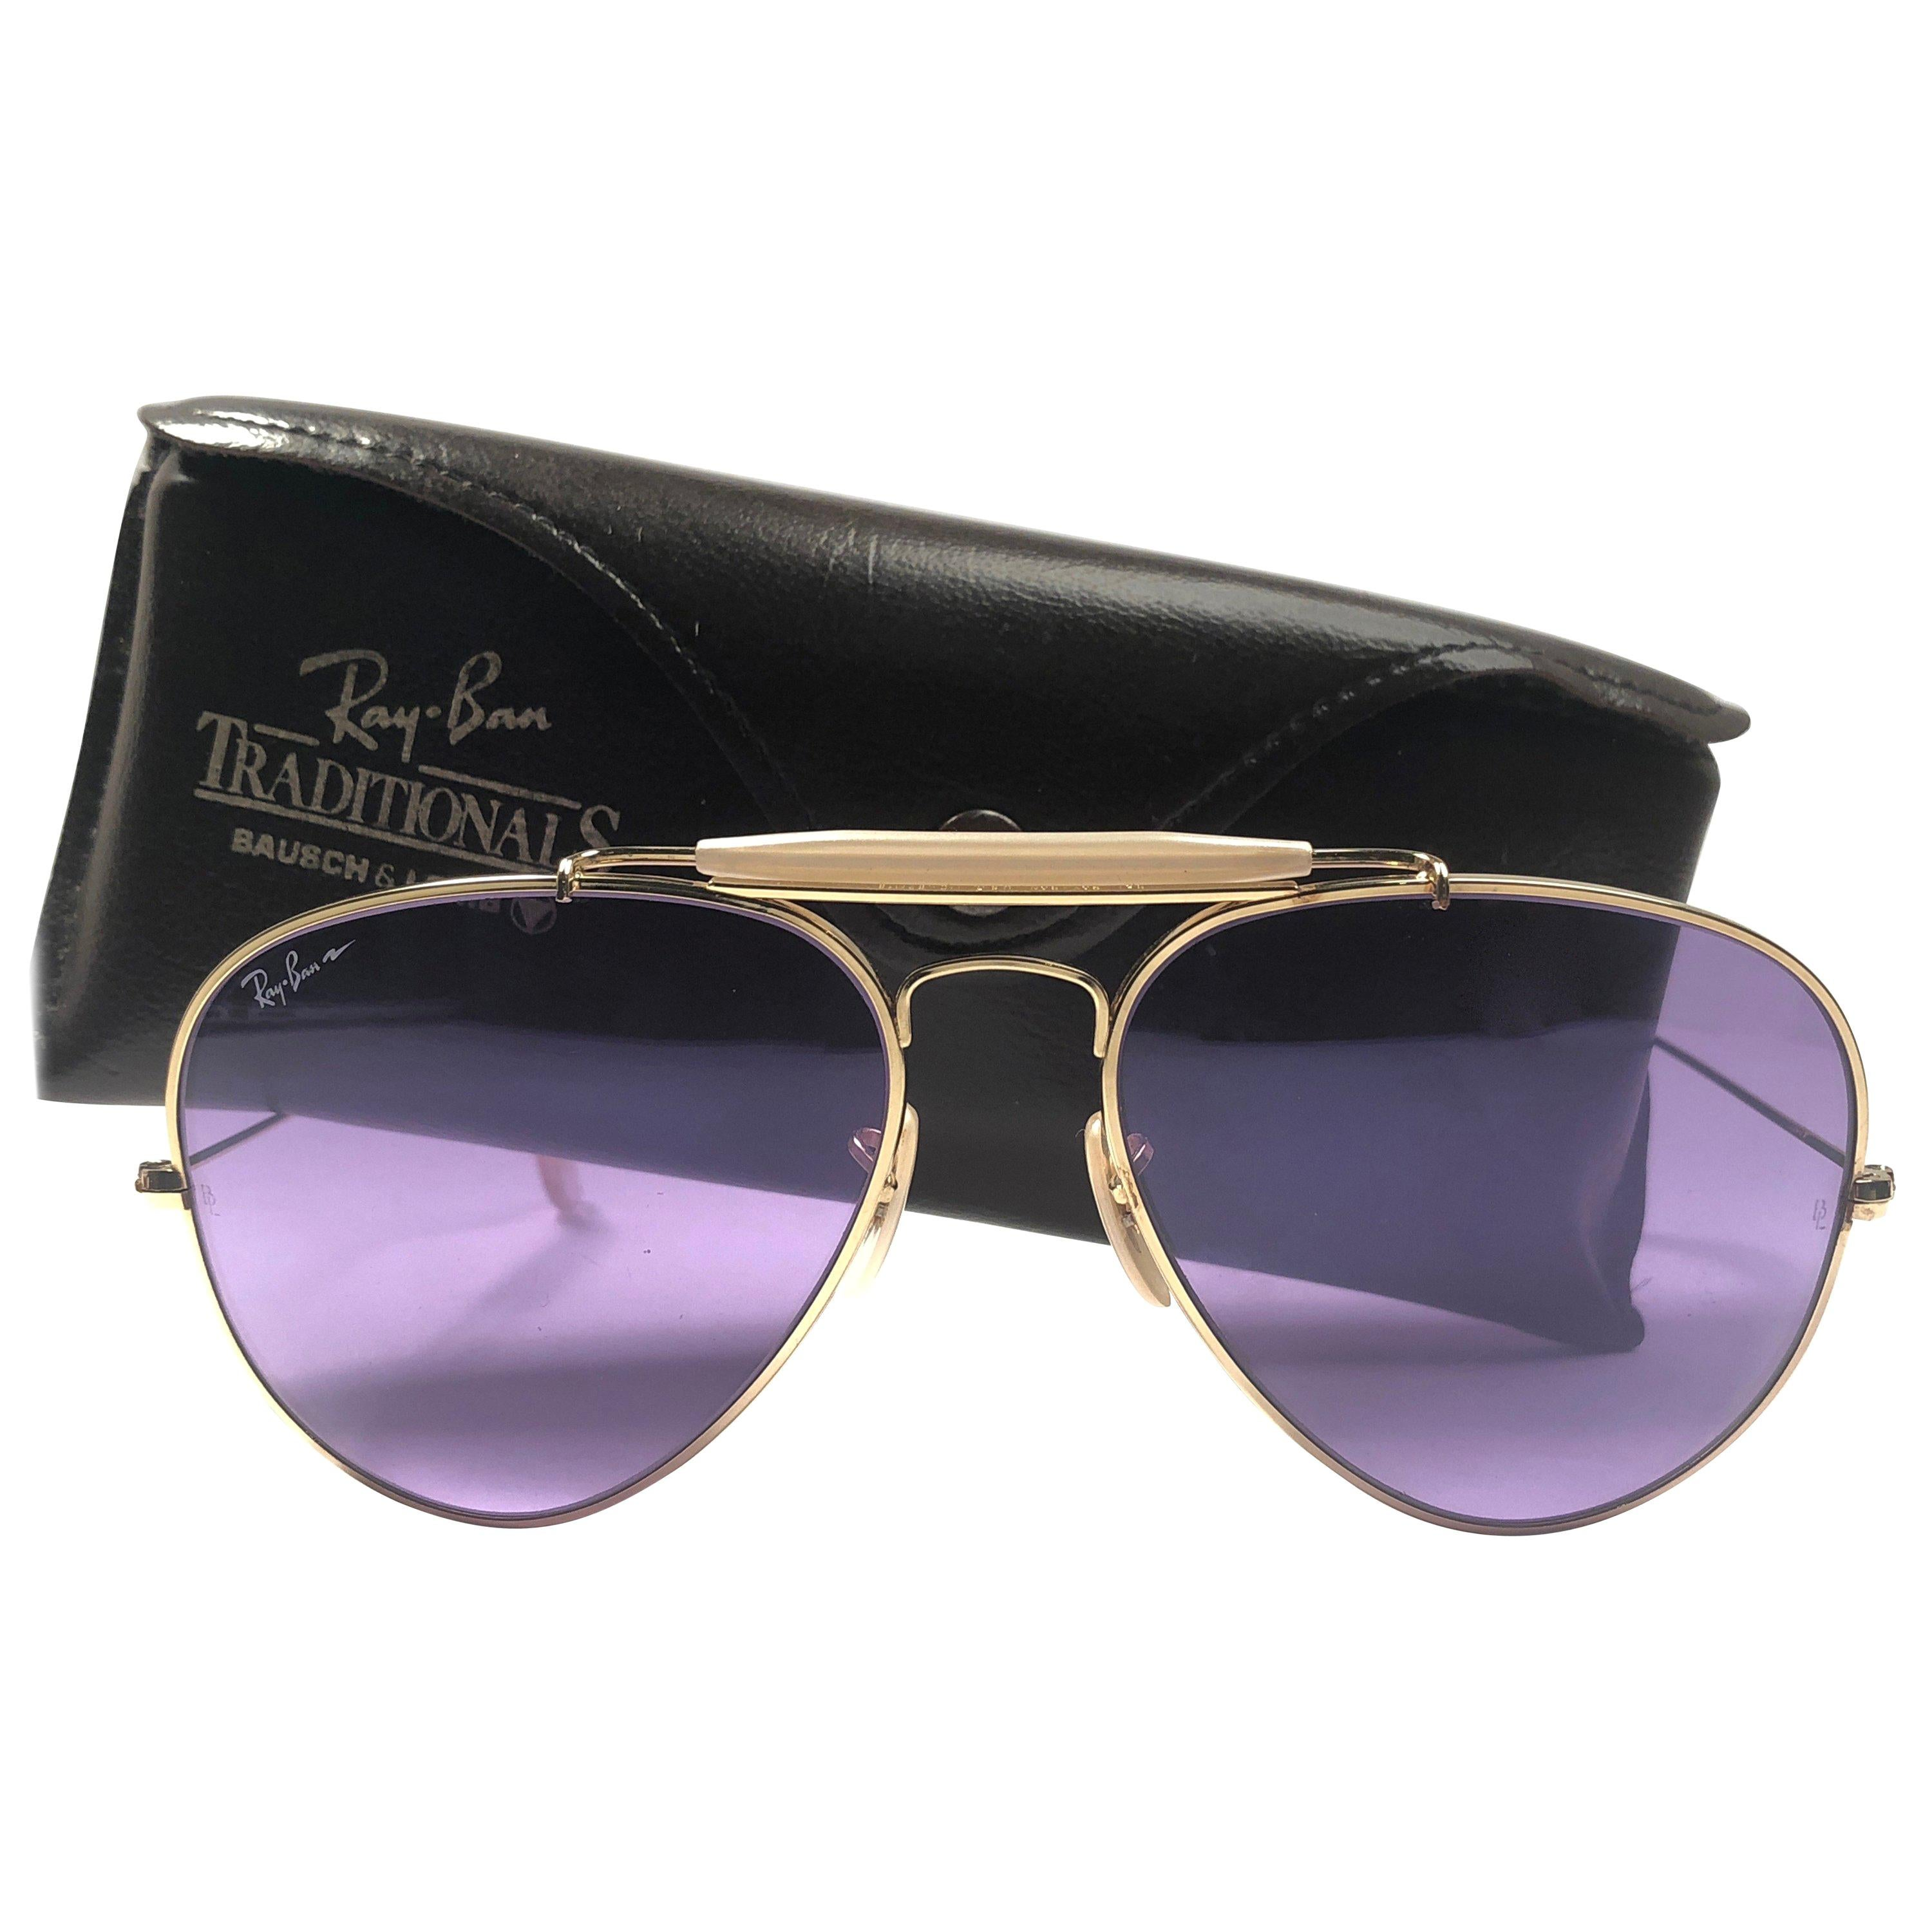 b4c907f69302 Vintage Ray-Ban Sunglasses - 140 For Sale at 1stdibs